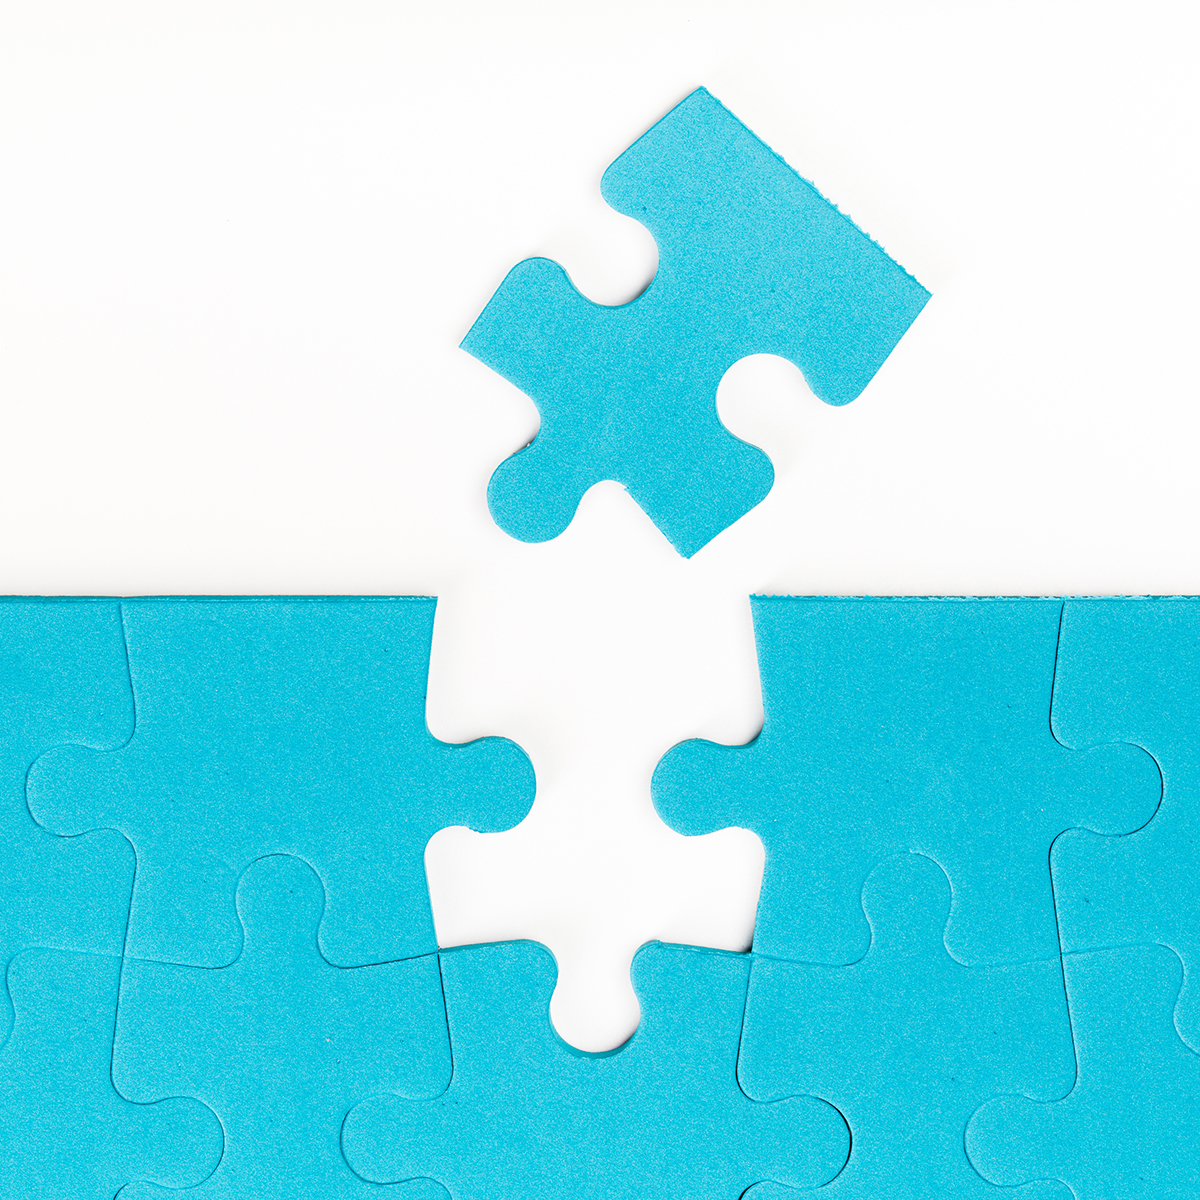 The Missing Piece in Employee Development